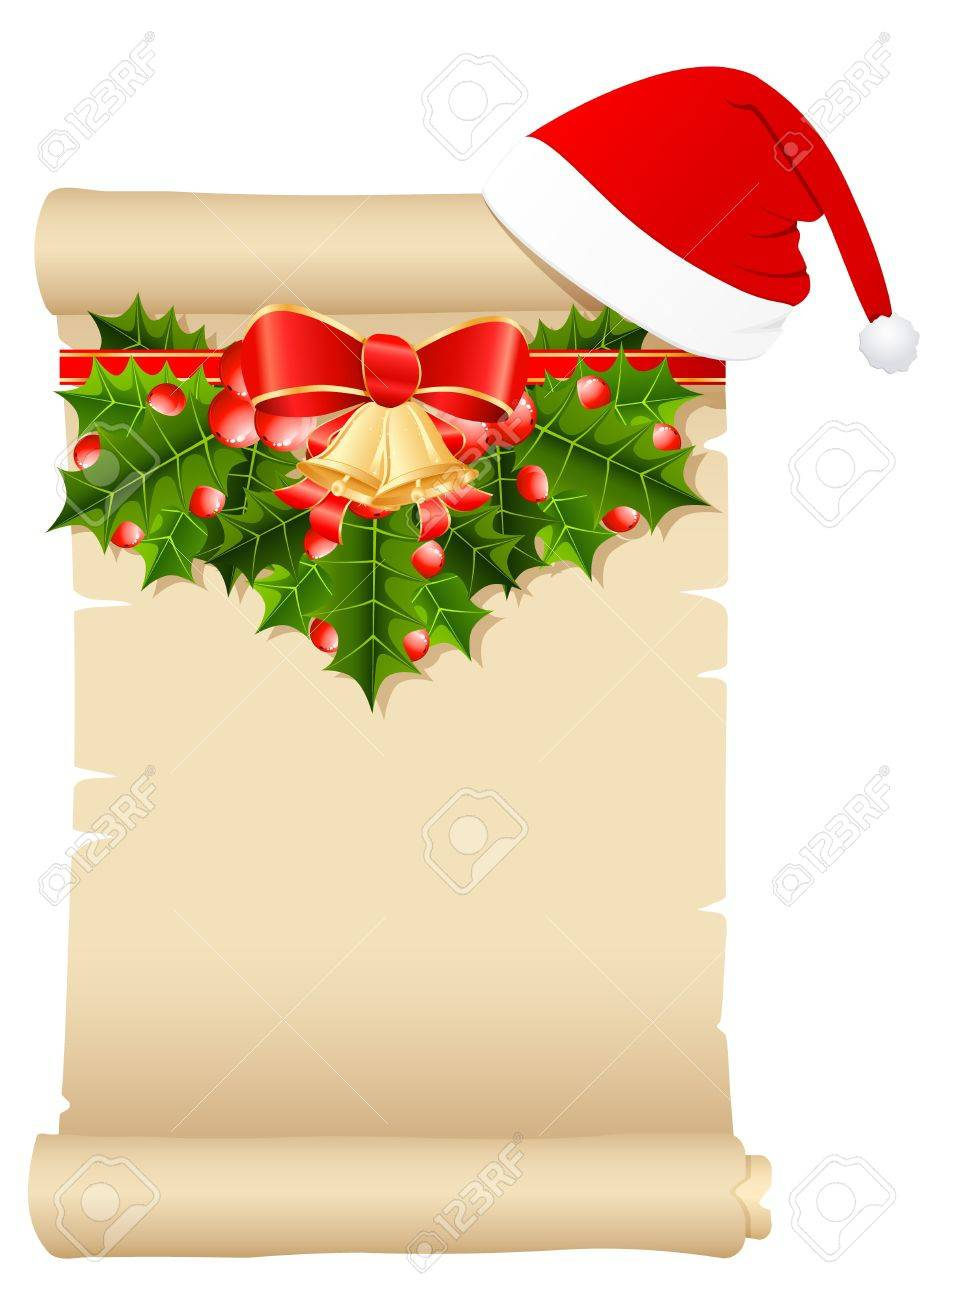 Christmas Wish List With Santa S Hat And Christmas Decoration